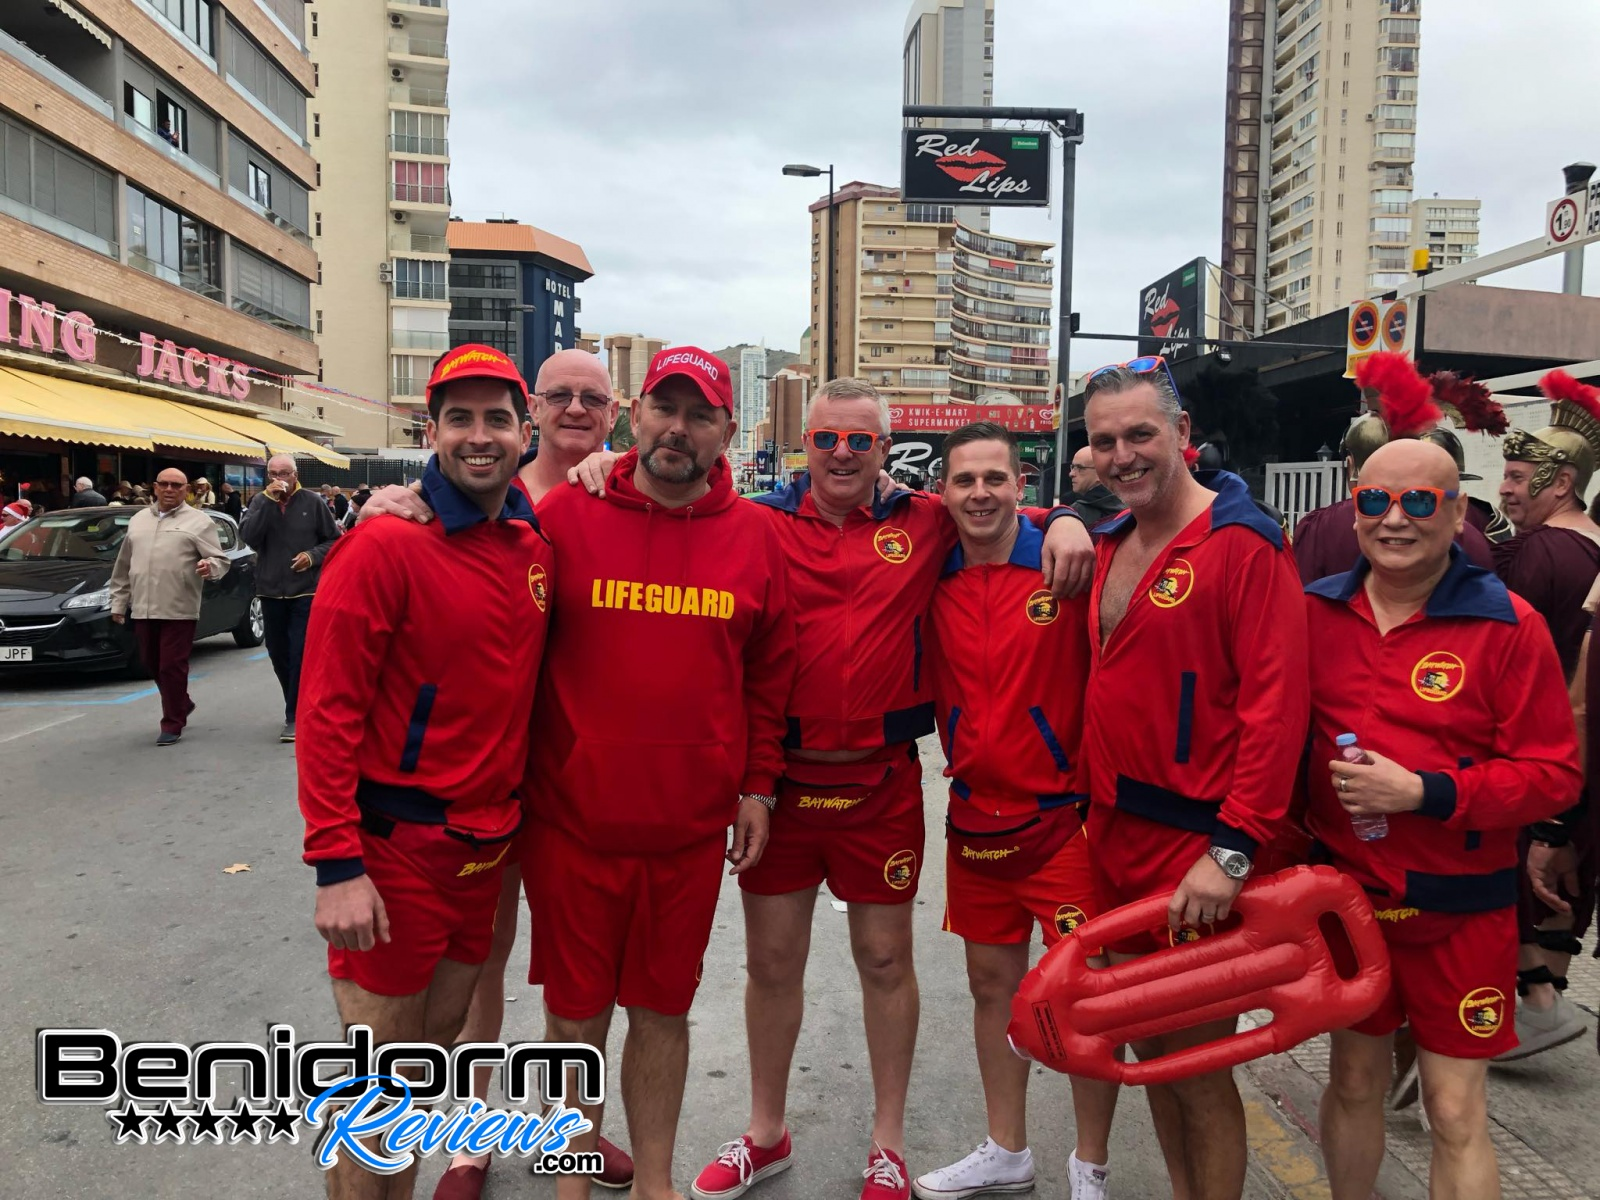 Benidorm-Fiestas-2019-Fancy-Dress-39